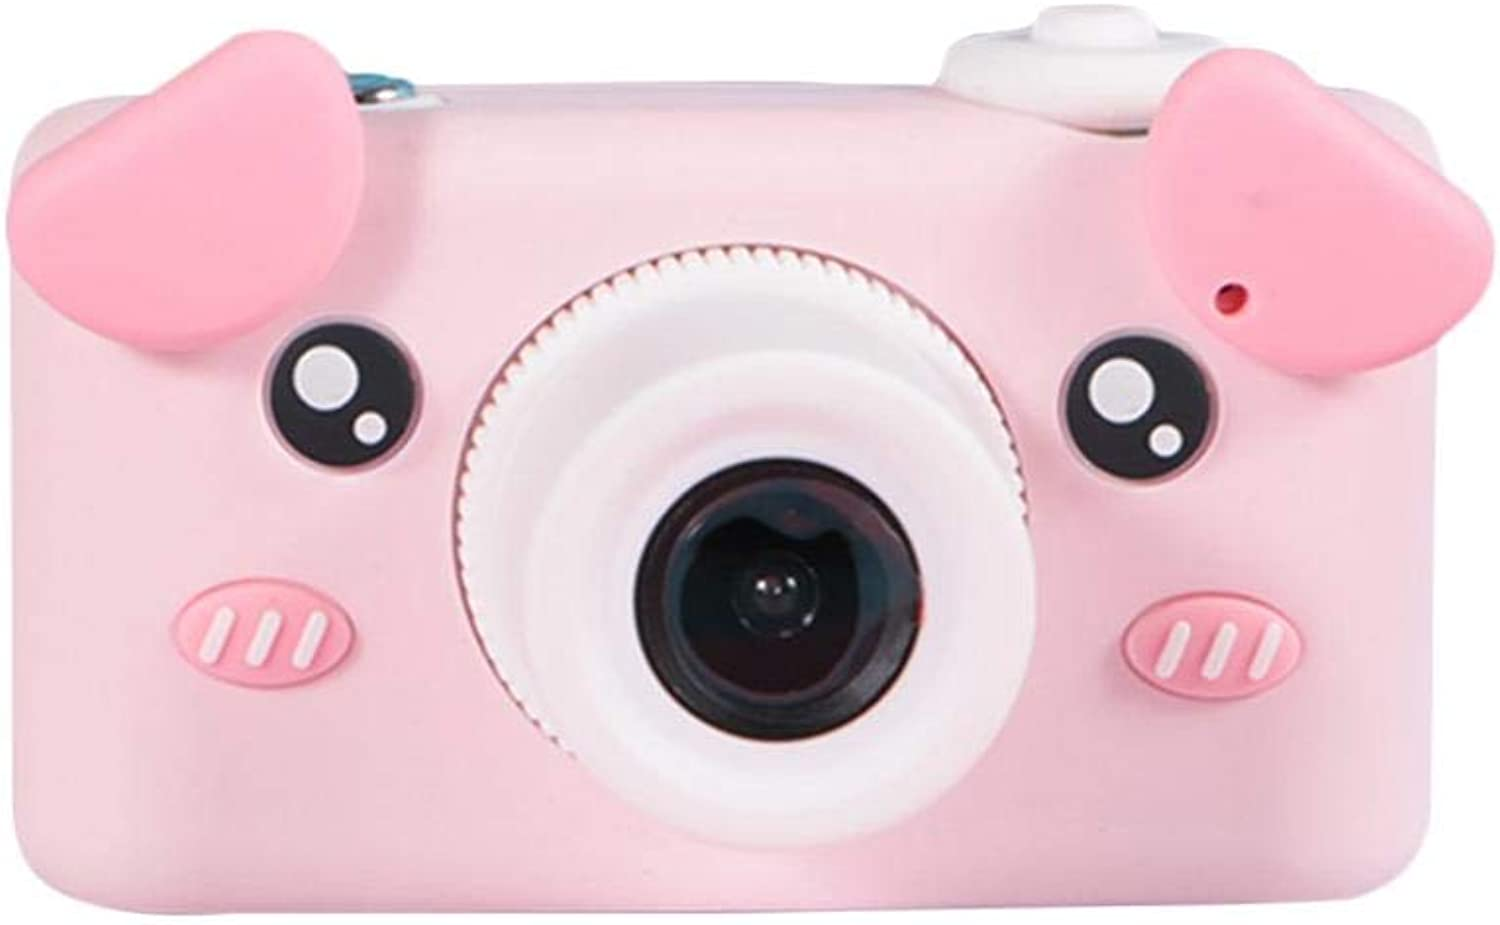 Camera Kids Digital Camera Toy Camera HD 8MP Video Digital Camera Camcorder with Kid-Proof Silicon Case for Girls and Boys